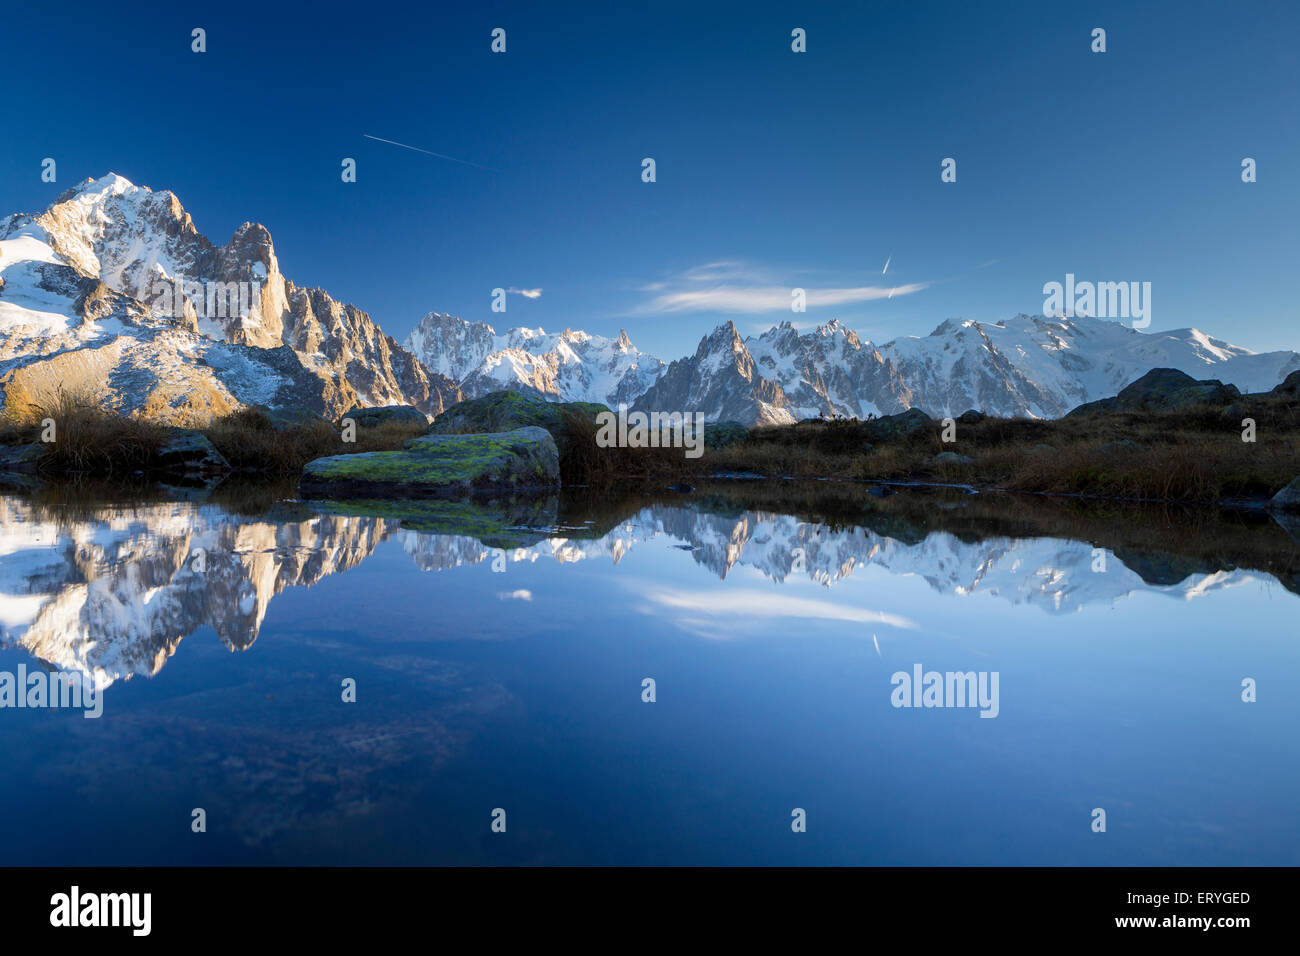 Mont Blanc massif reflected in the Lac des Chésery, Chamonix, Rhone-Alpes, France Stock Photo